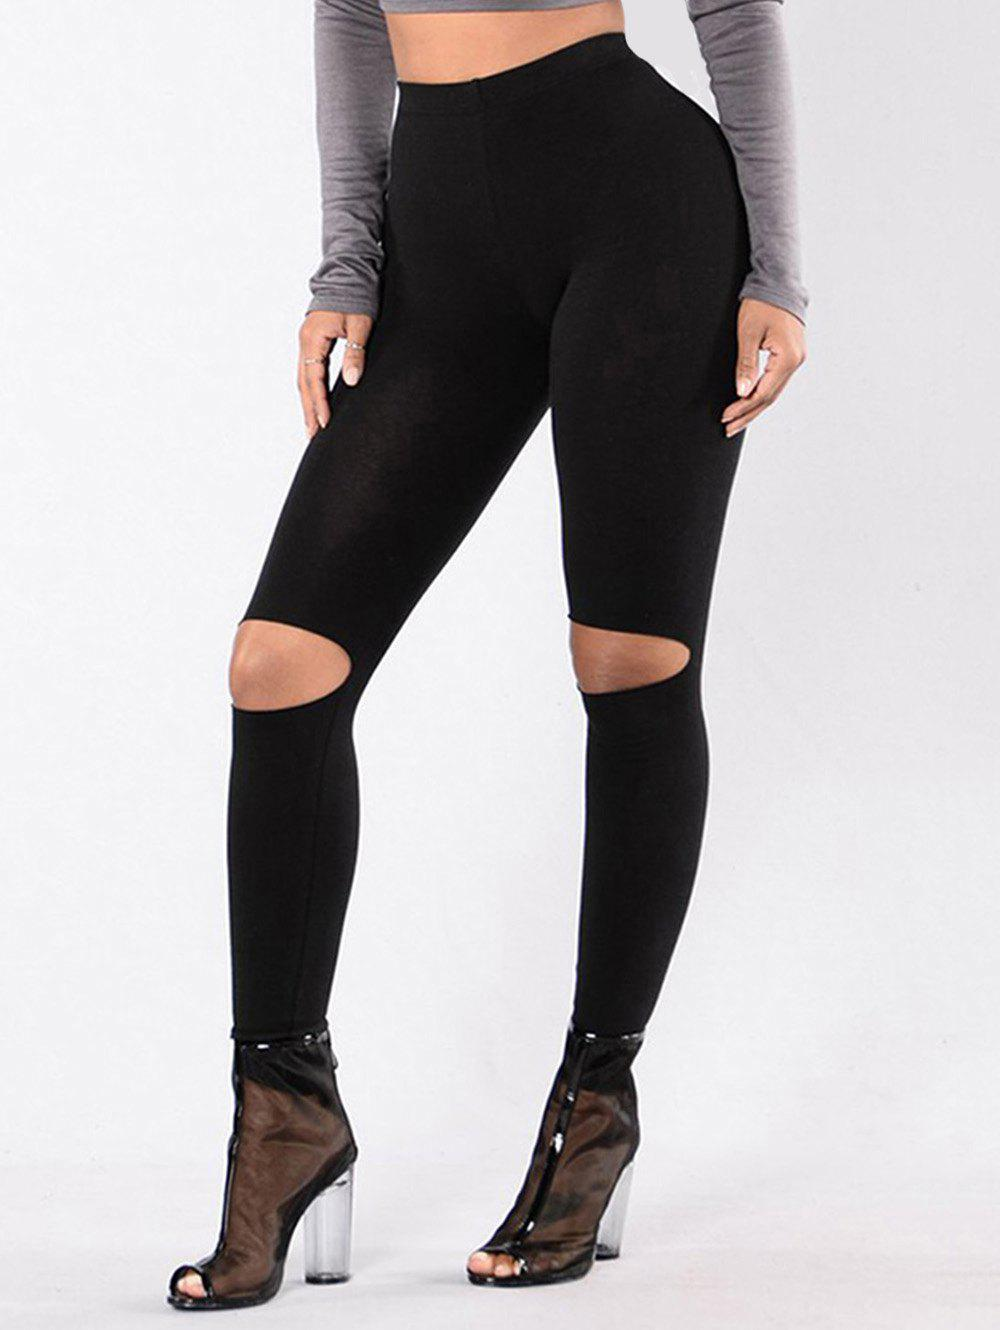 New Ripped High Waist Leggings